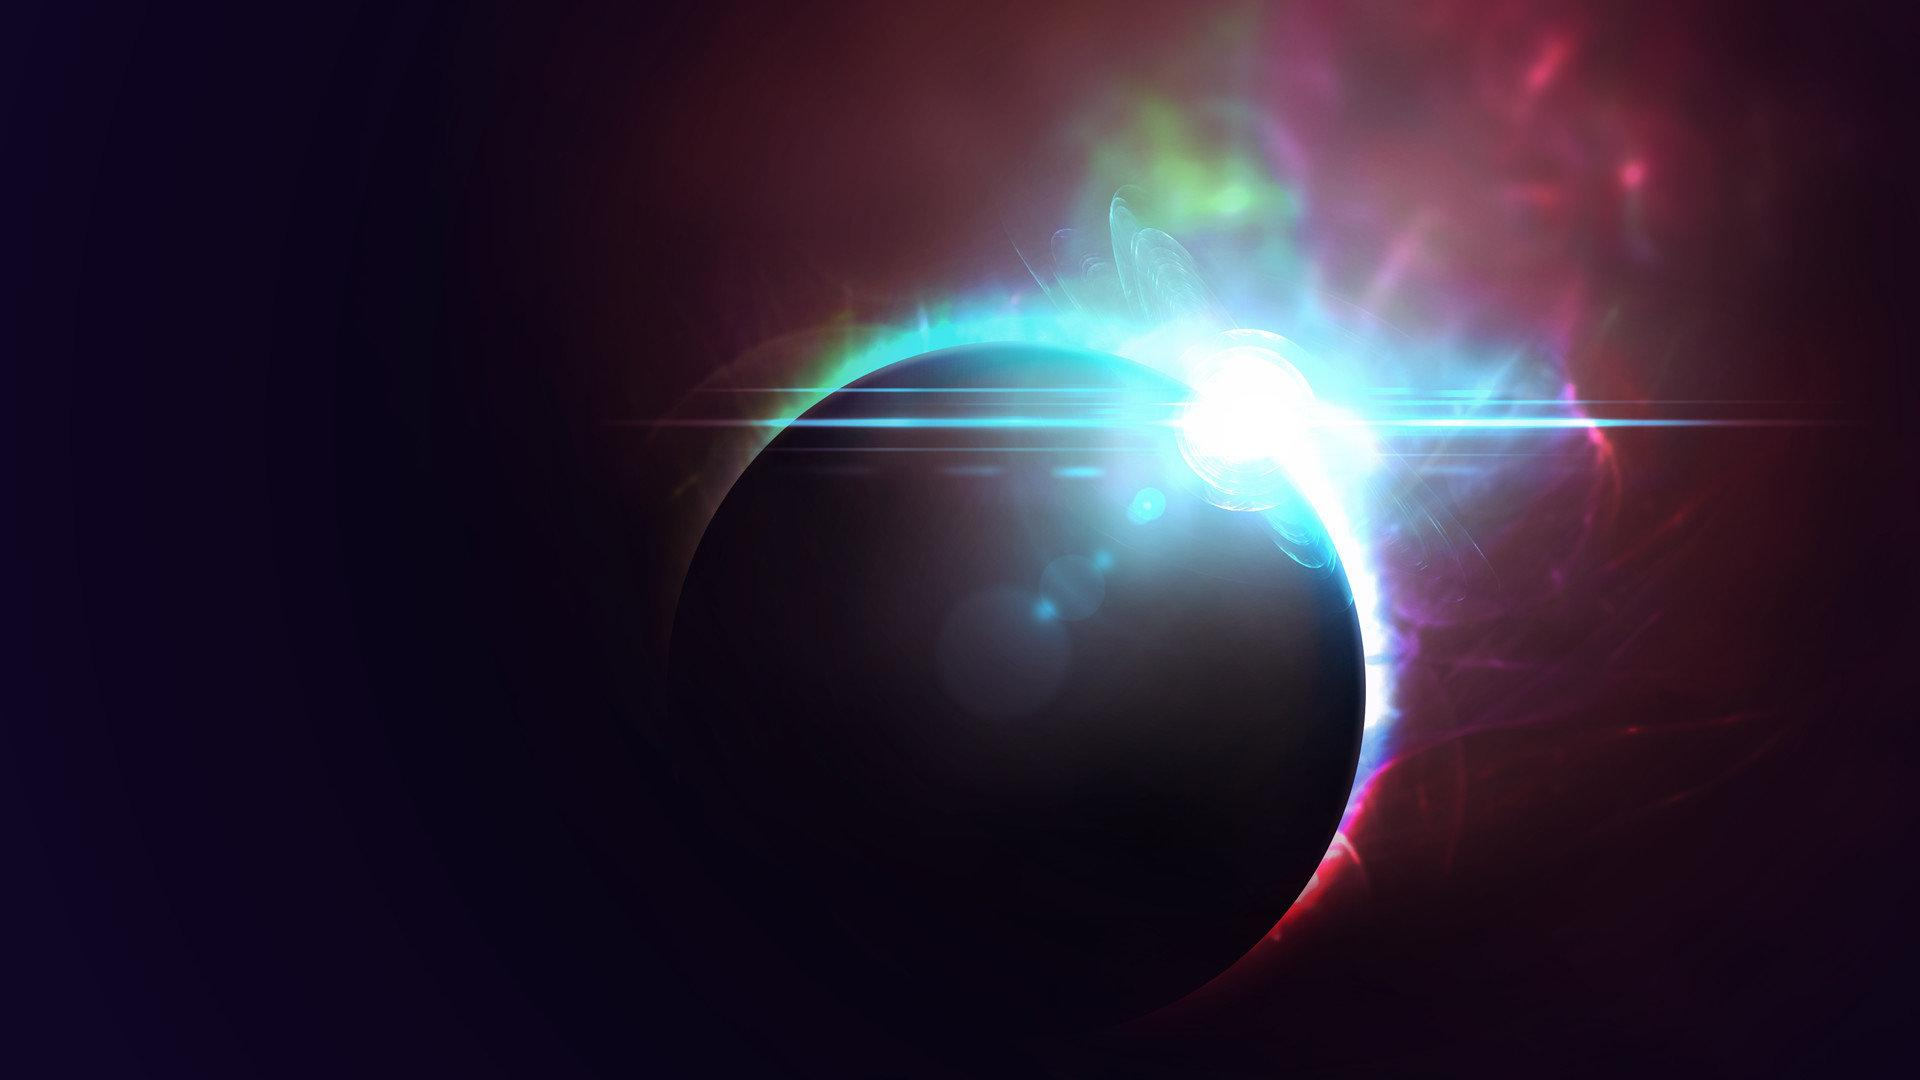 Eclipse wallpapers HD for desktop backgrounds